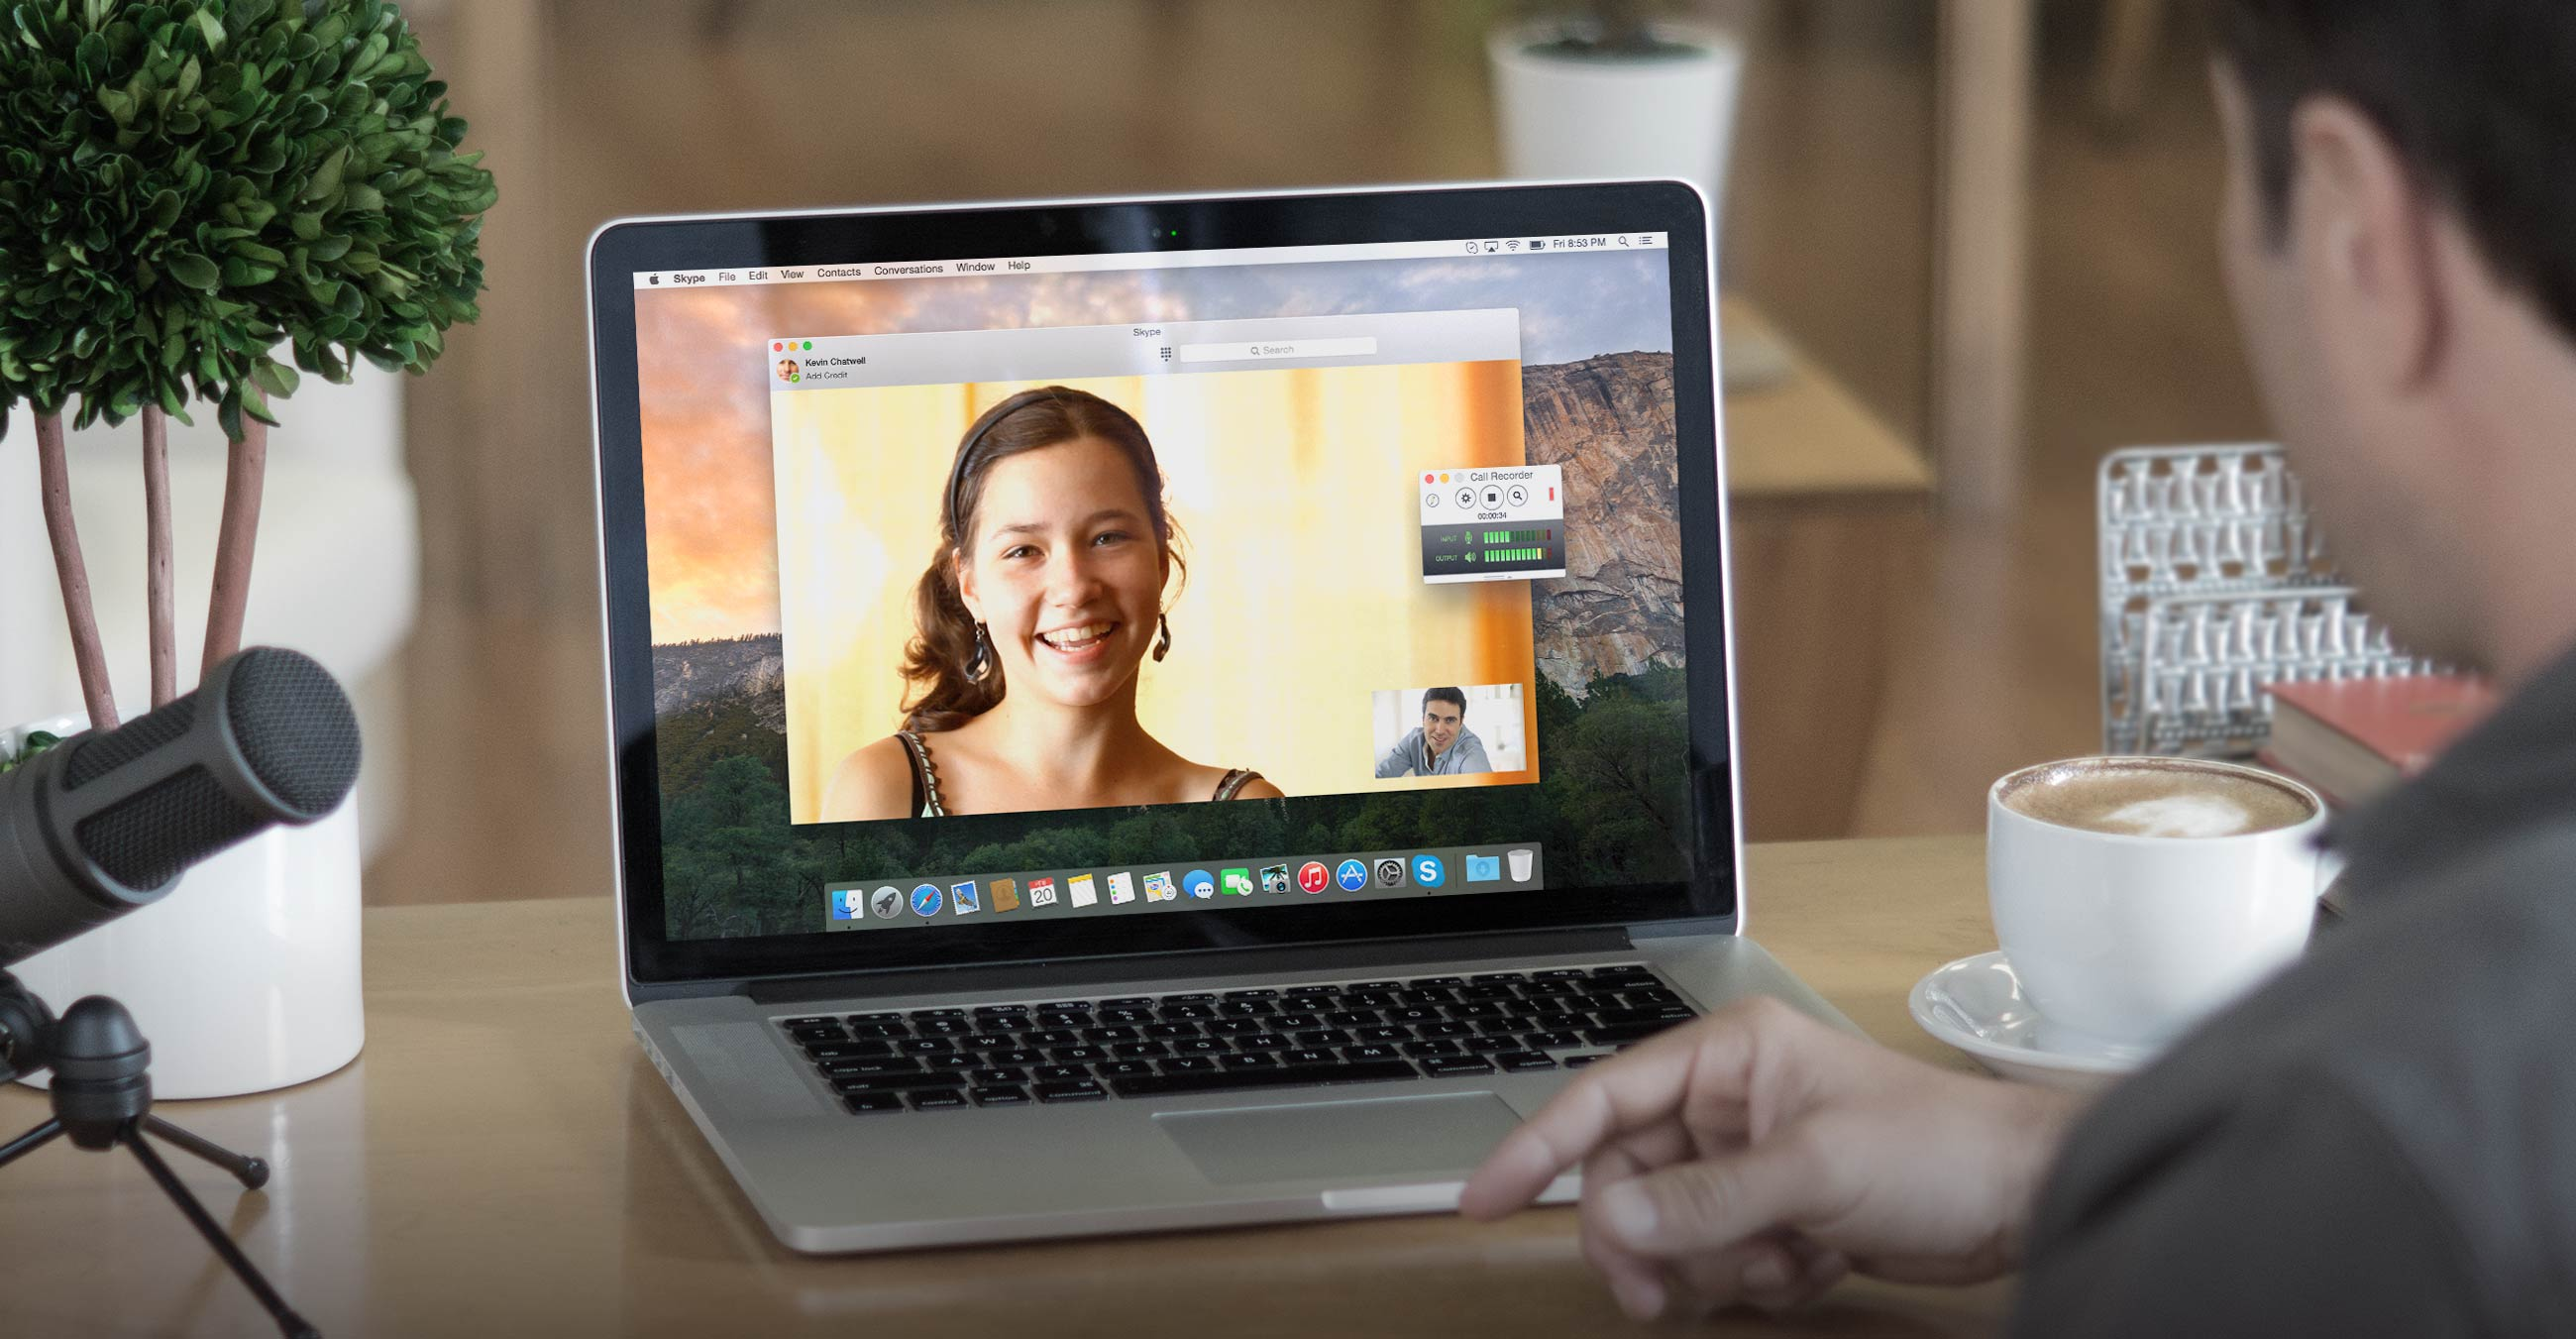 Mac Xxx Video Chat